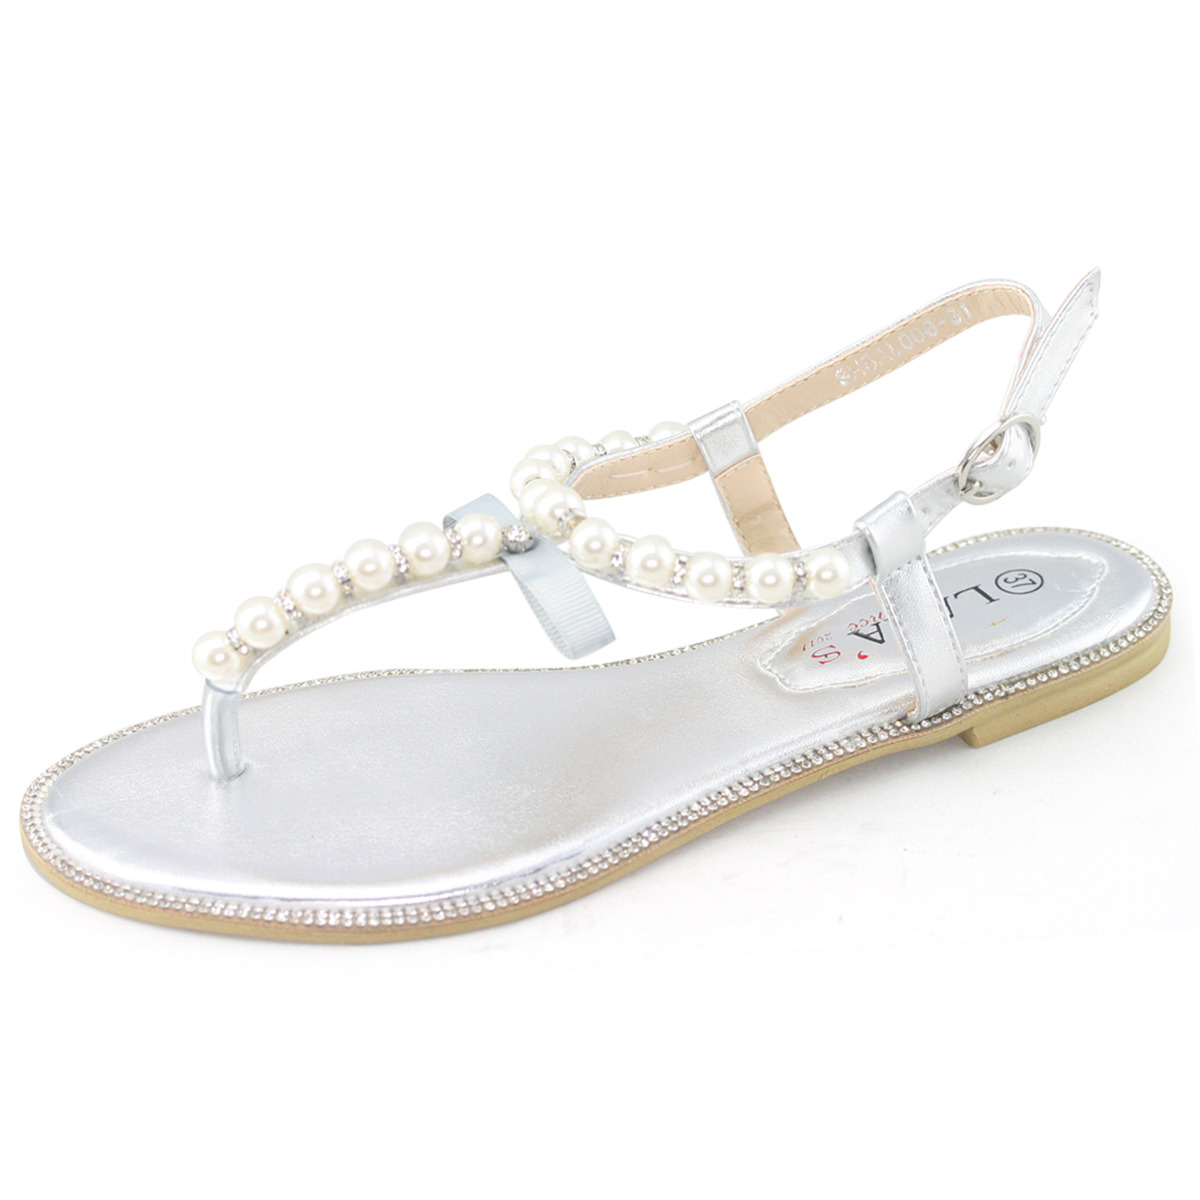 4492873c636e0 All about Shesole Womens Flat White Pearl Beach Wedding Sandals ...